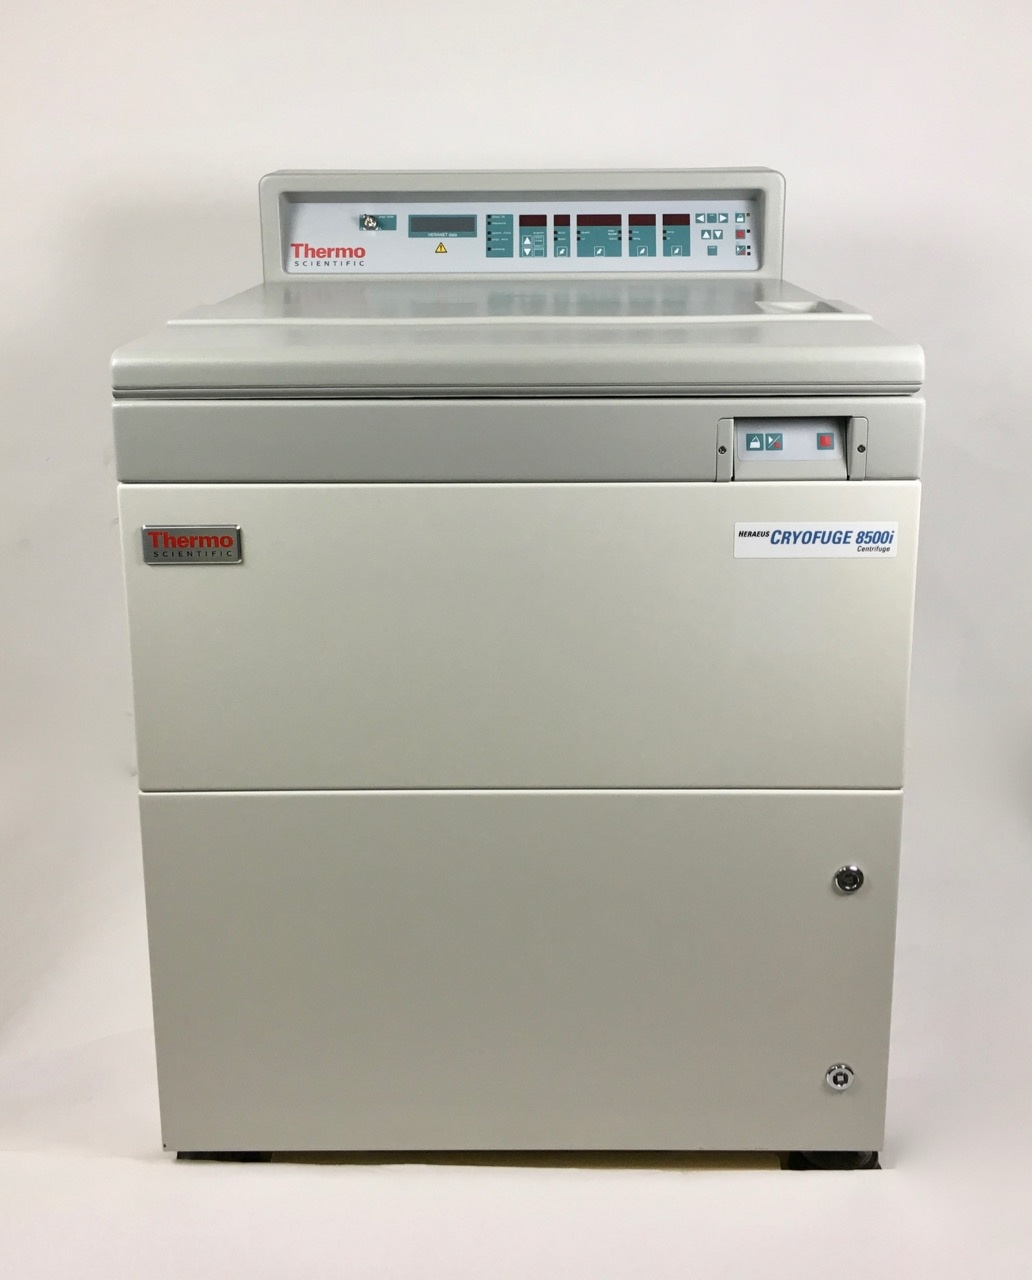 Thermo Scientific Thermo Cryofuge 8500i incl. Rotor